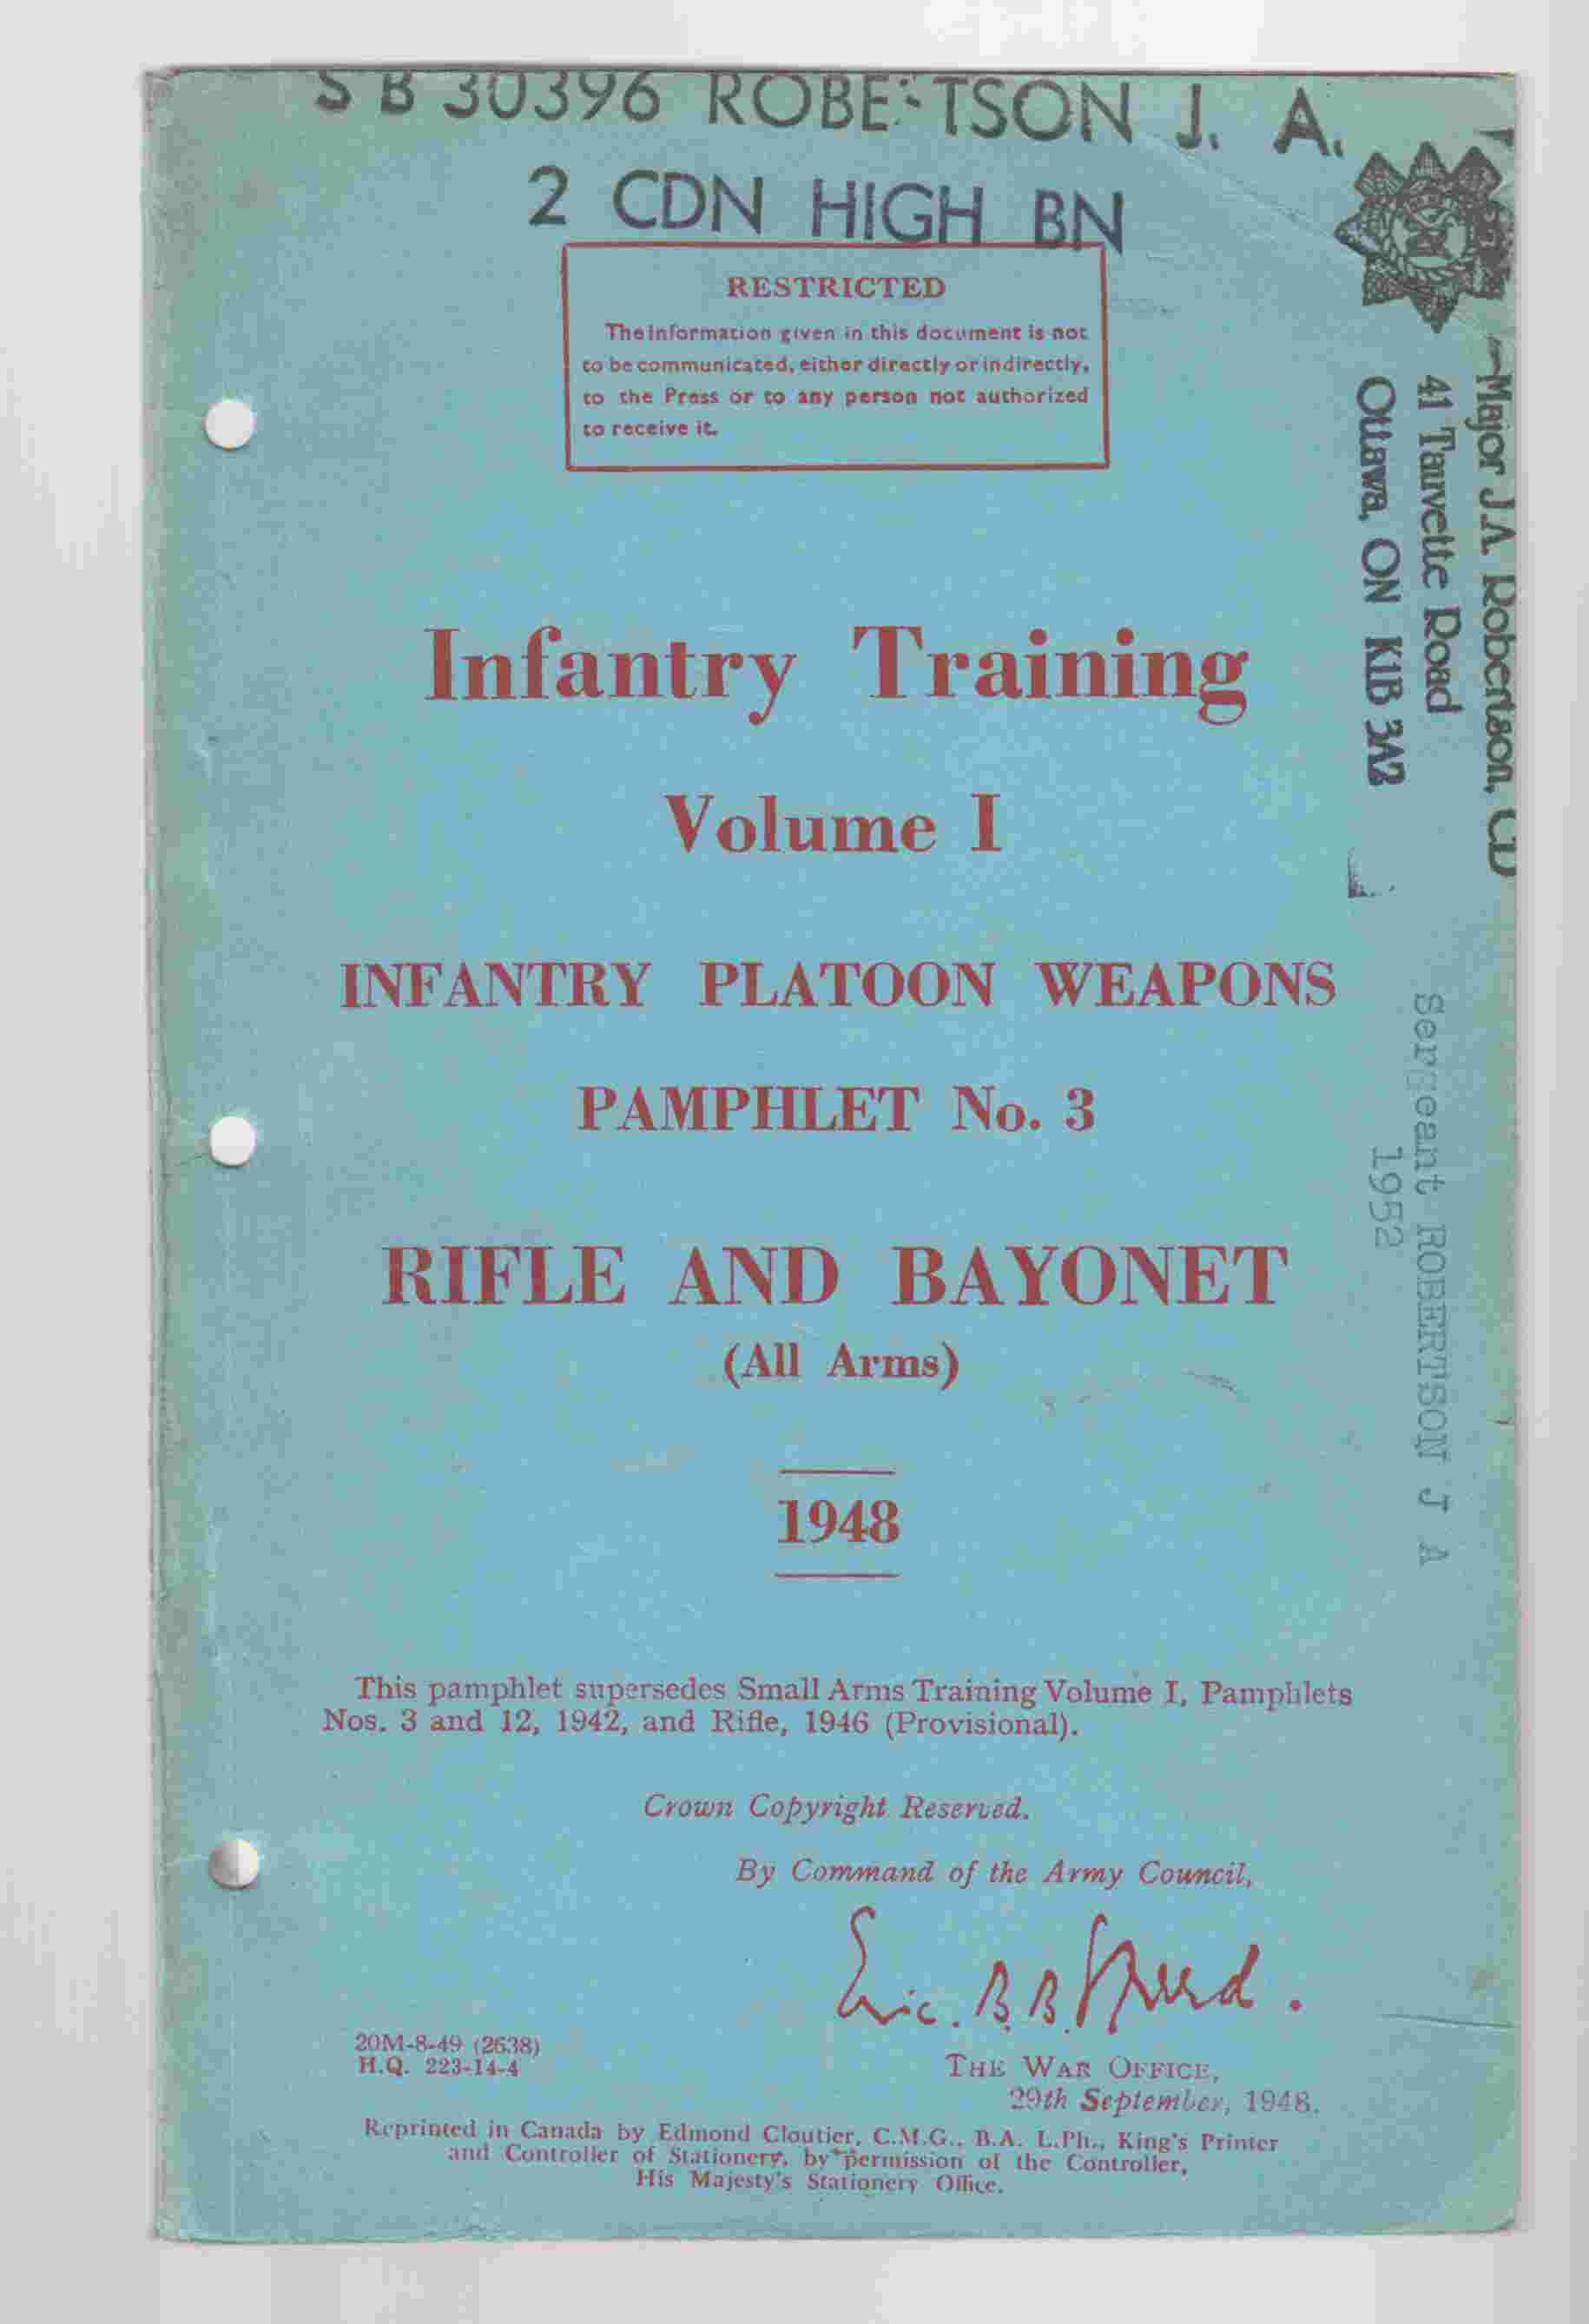 Image for Infantry Training Volume I Infantry Platoon Weapons Pamphlet No. 3 Rifle and Bayonet (All Arms) 1948